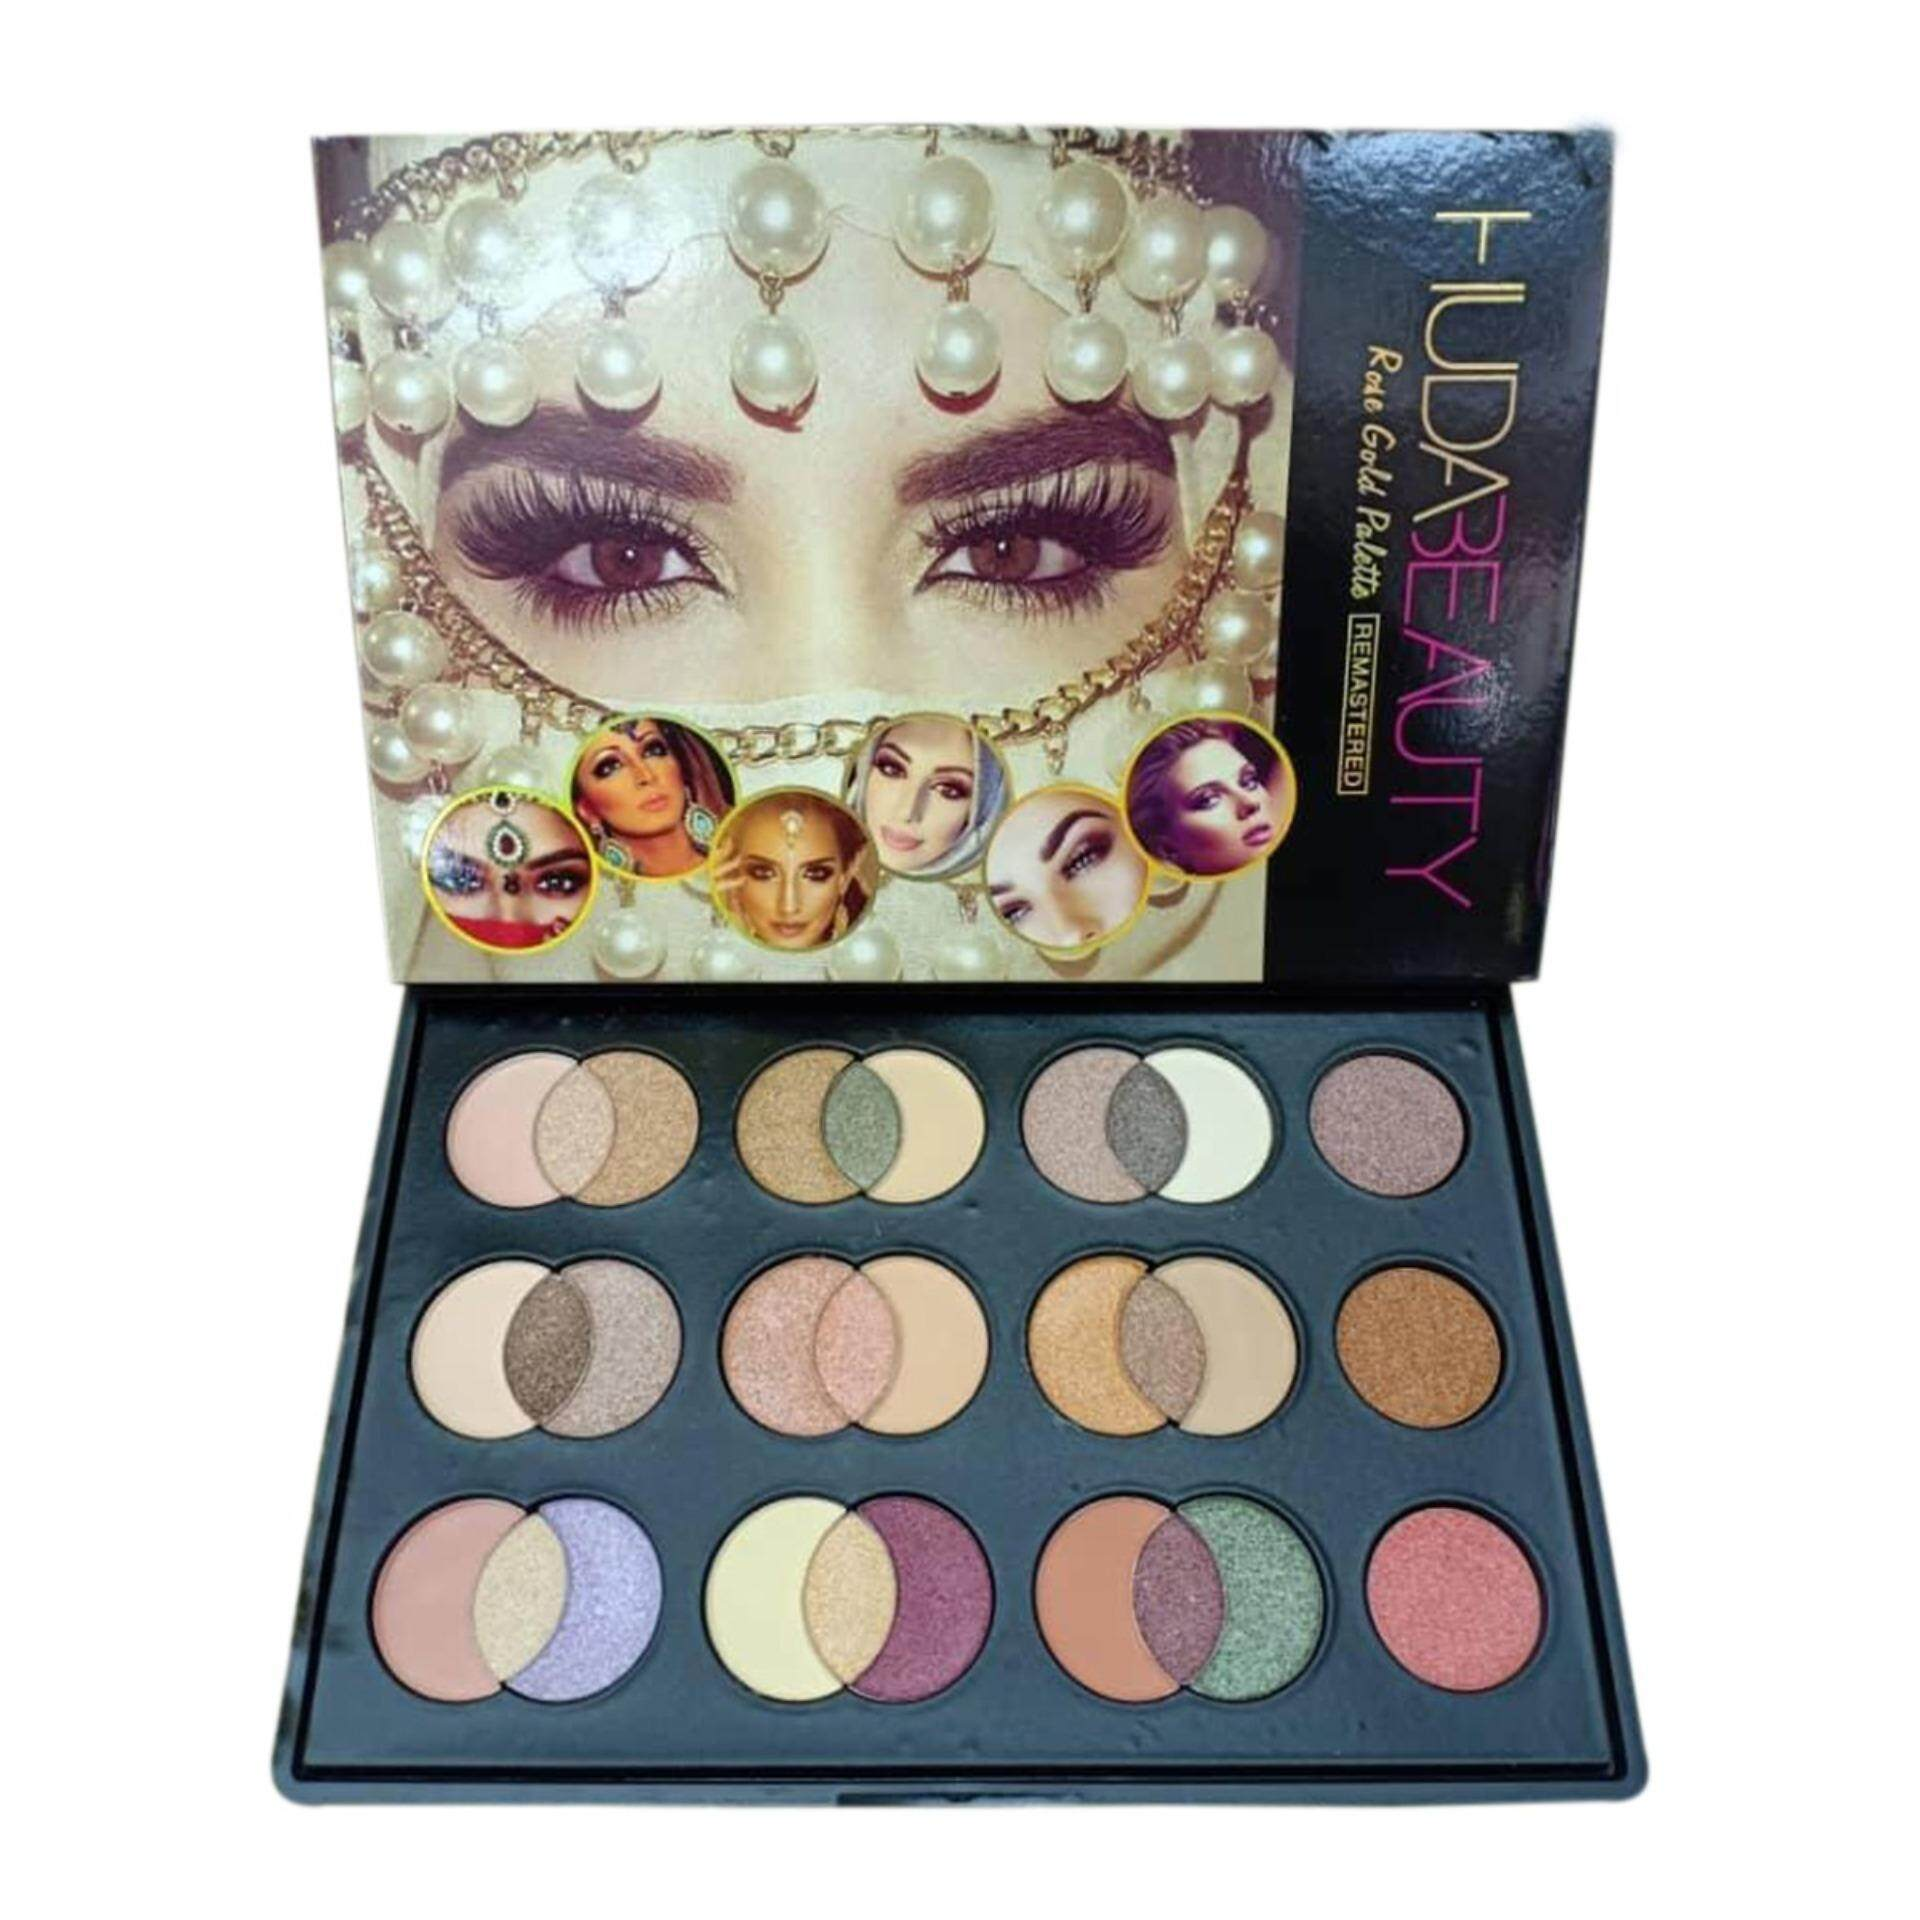 Branded Rose Gold 3 IN 1 Eye Shadow Palette 30 Colors With Free Brush